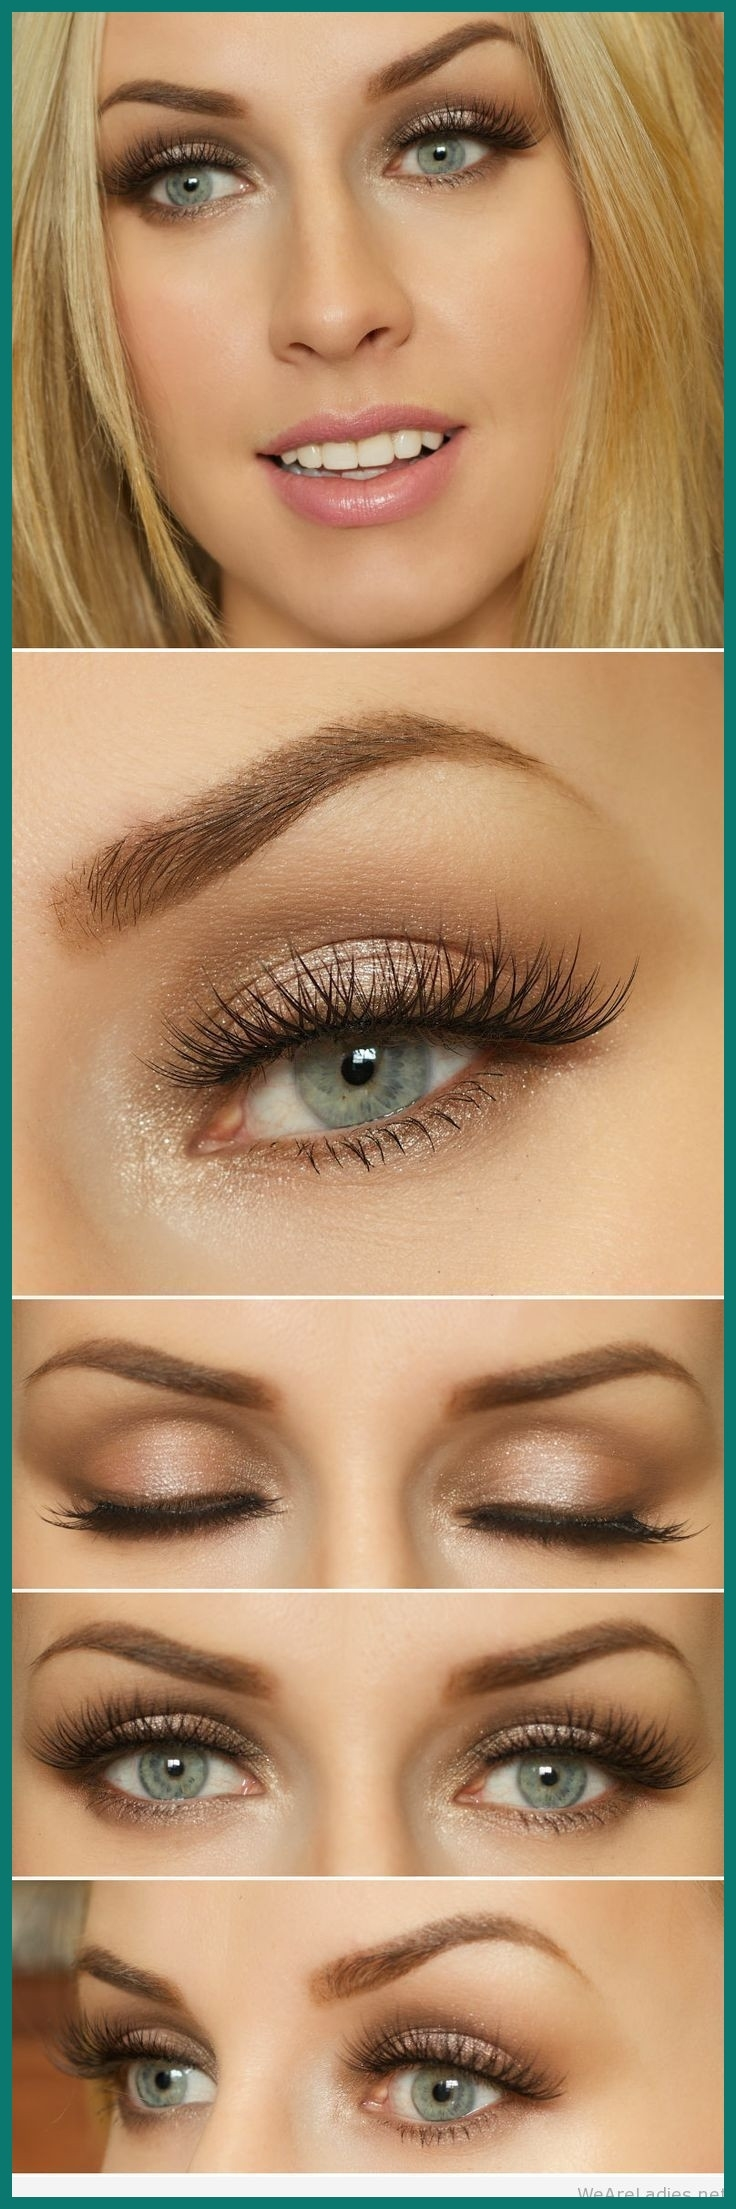 Best Eyeshadow Colors For Blue Eyes And Brown Hair 534226 with regard to Eyeshadow Colors For Blue Eyes And Blonde Hair